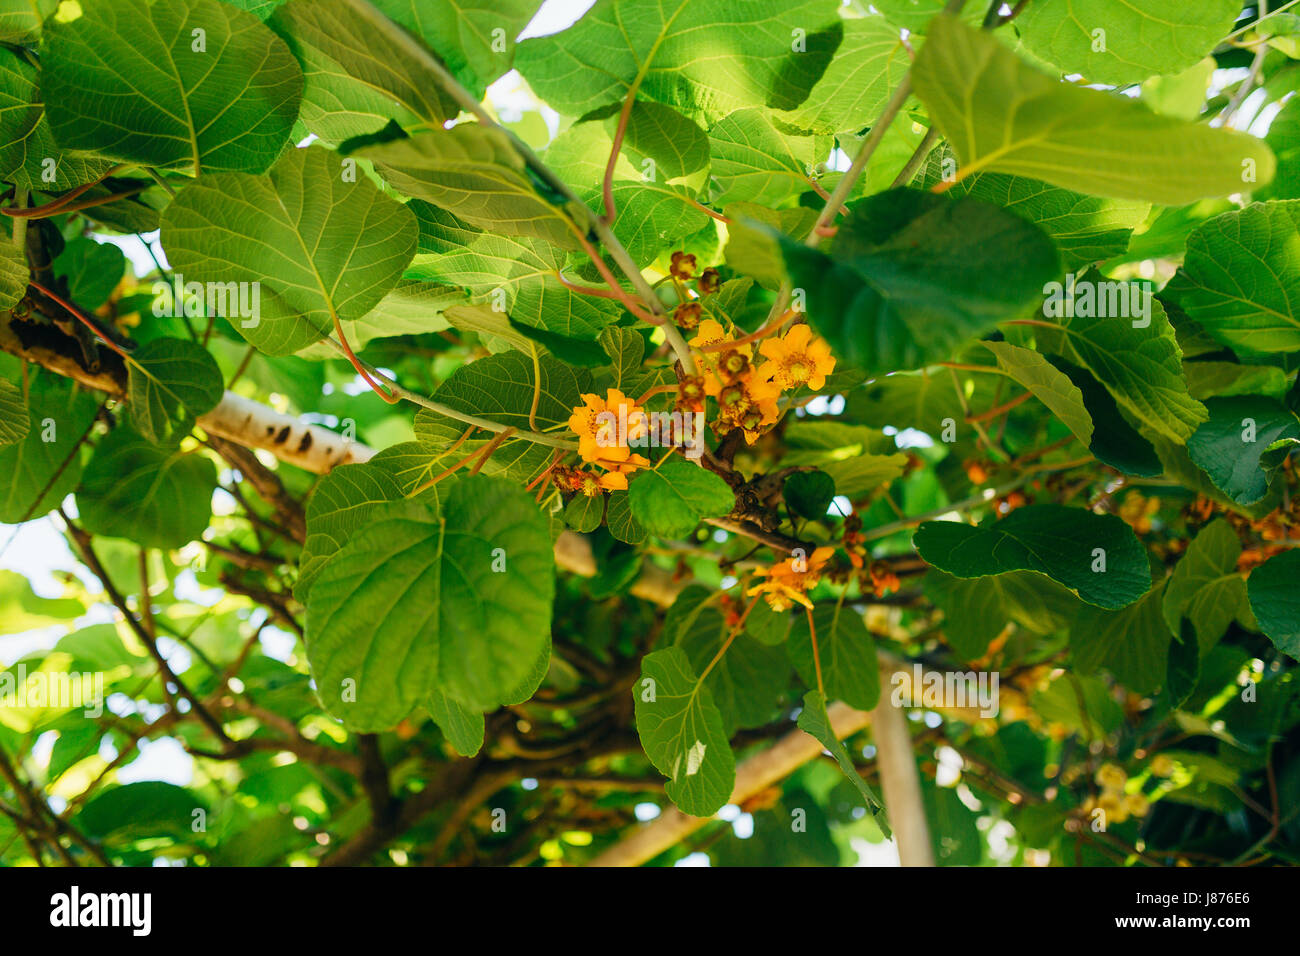 Flowering trees kiwi spring flowering vines kicks in montenegro flowering trees kiwi spring flowering vines kicks in montenegro mightylinksfo